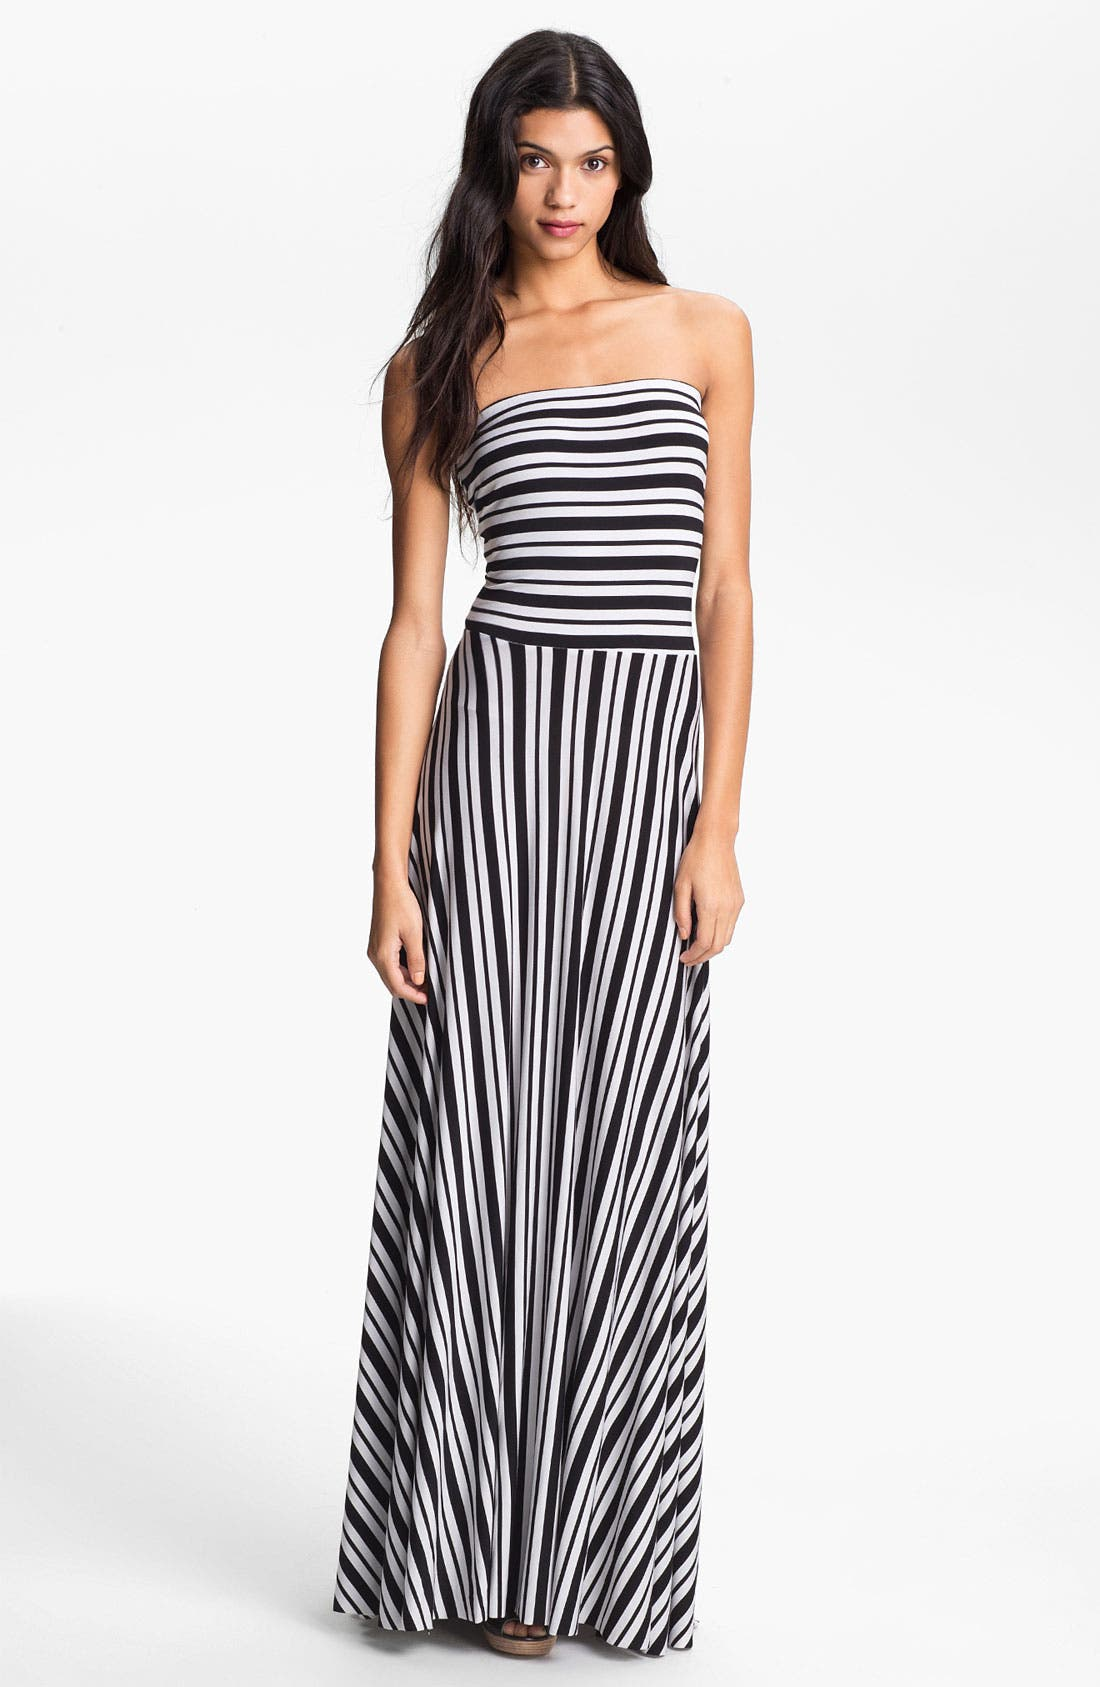 Alternate Image 1 Selected - Felicity & Coco Stripe Strapless Maxi Dress (Nordstrom Exclusive)